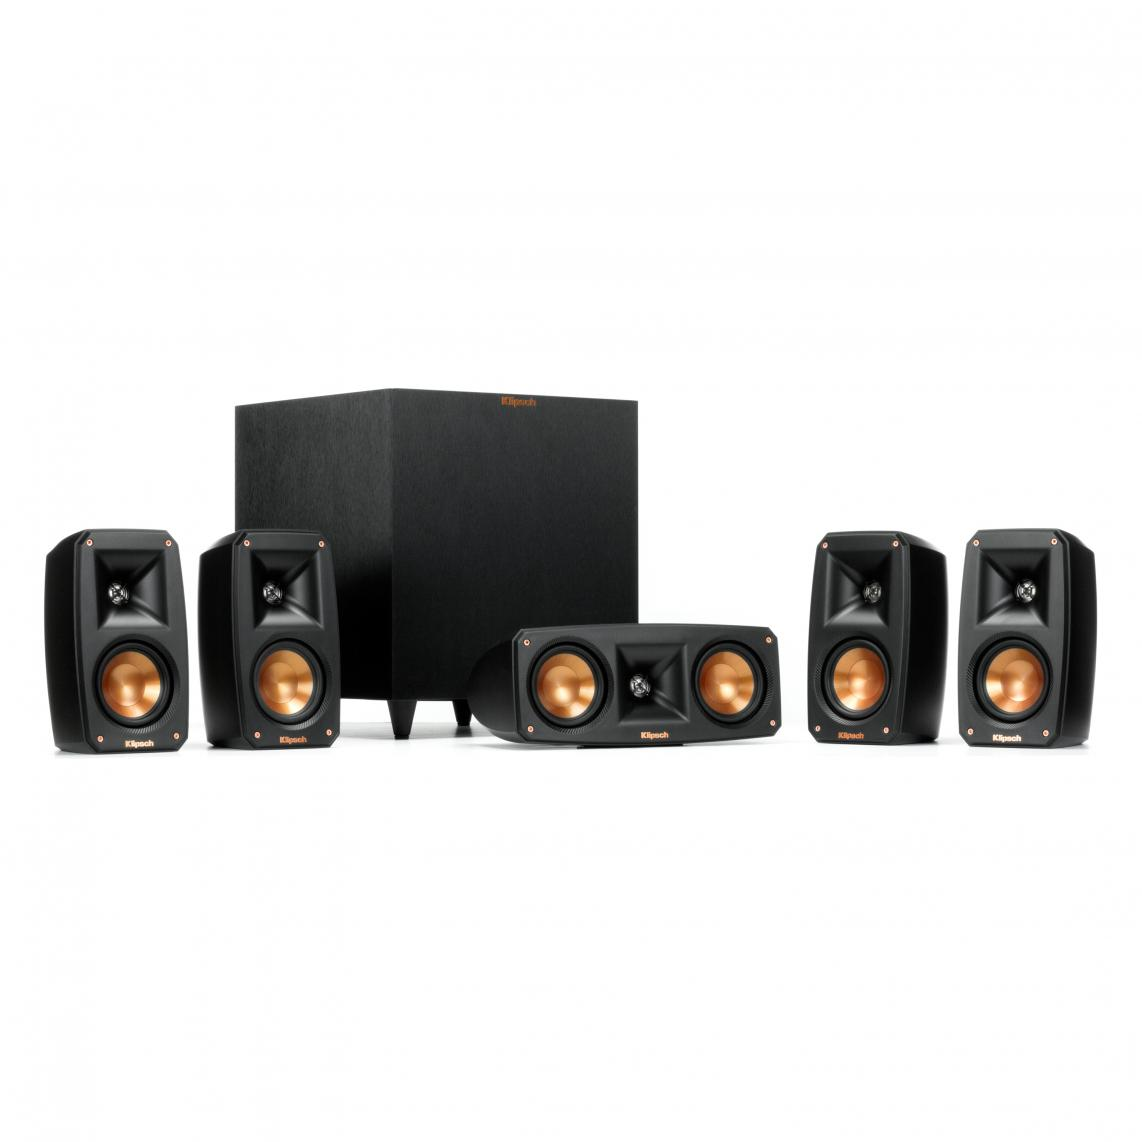 Klipsch Reference Theater Pack - zestaw kina 5.1